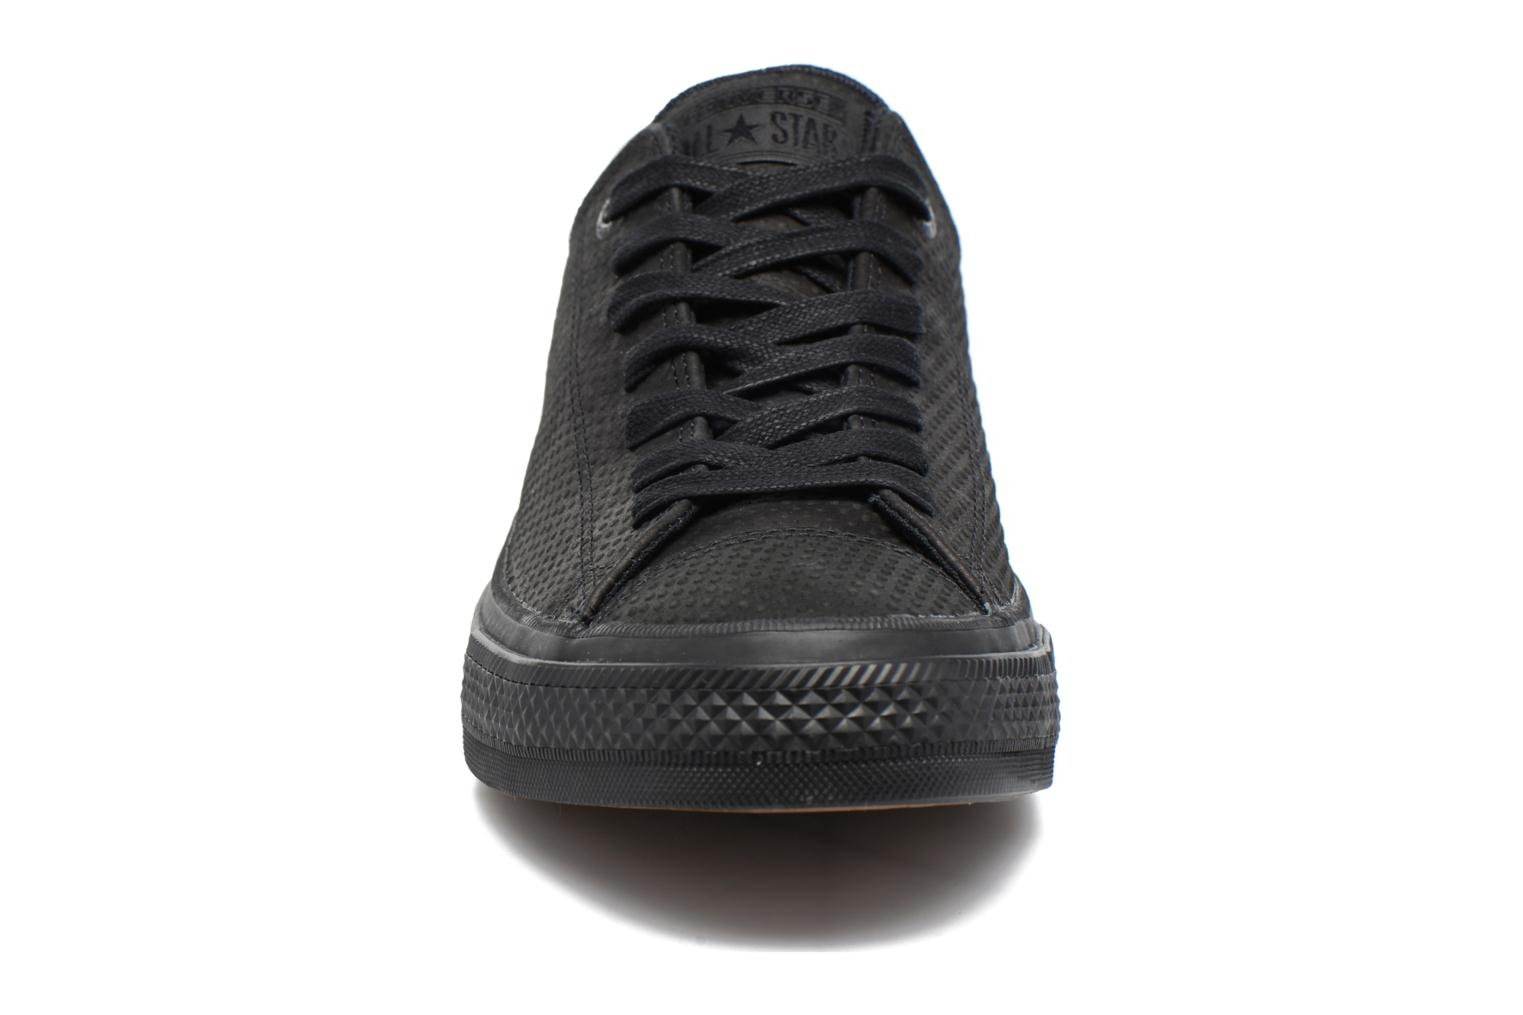 Chuck Taylor All Star II Ox Lux Leather Black/black/gum